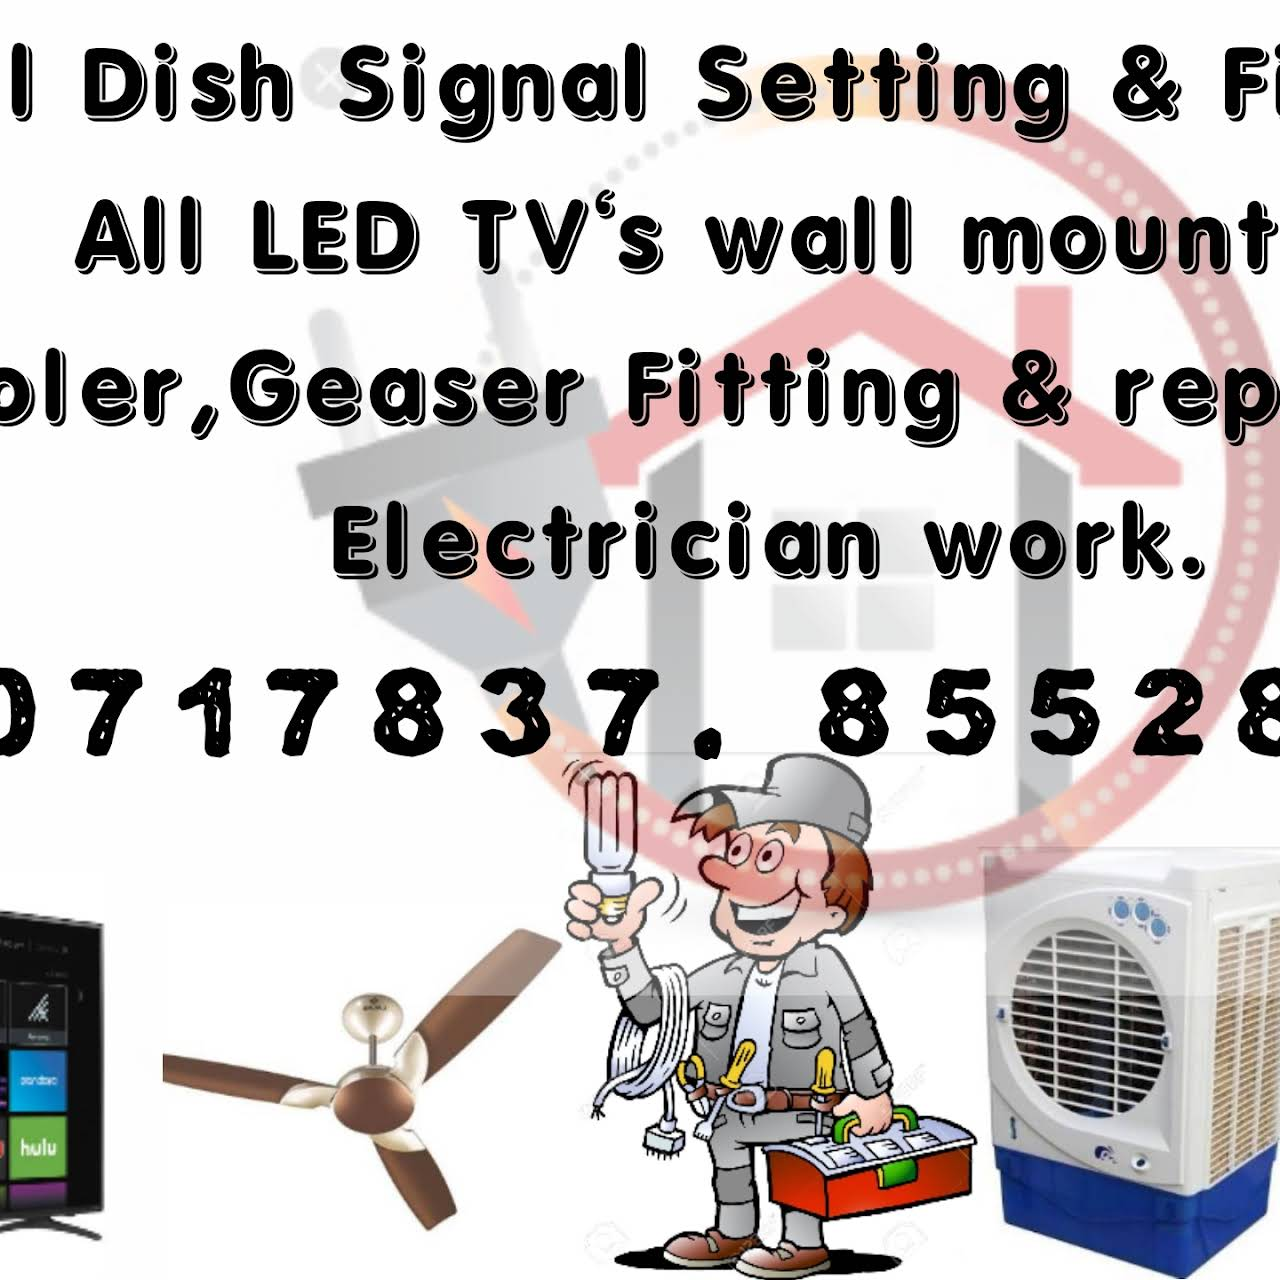 Netra electricals & dish fitting and sales and service - Electrical